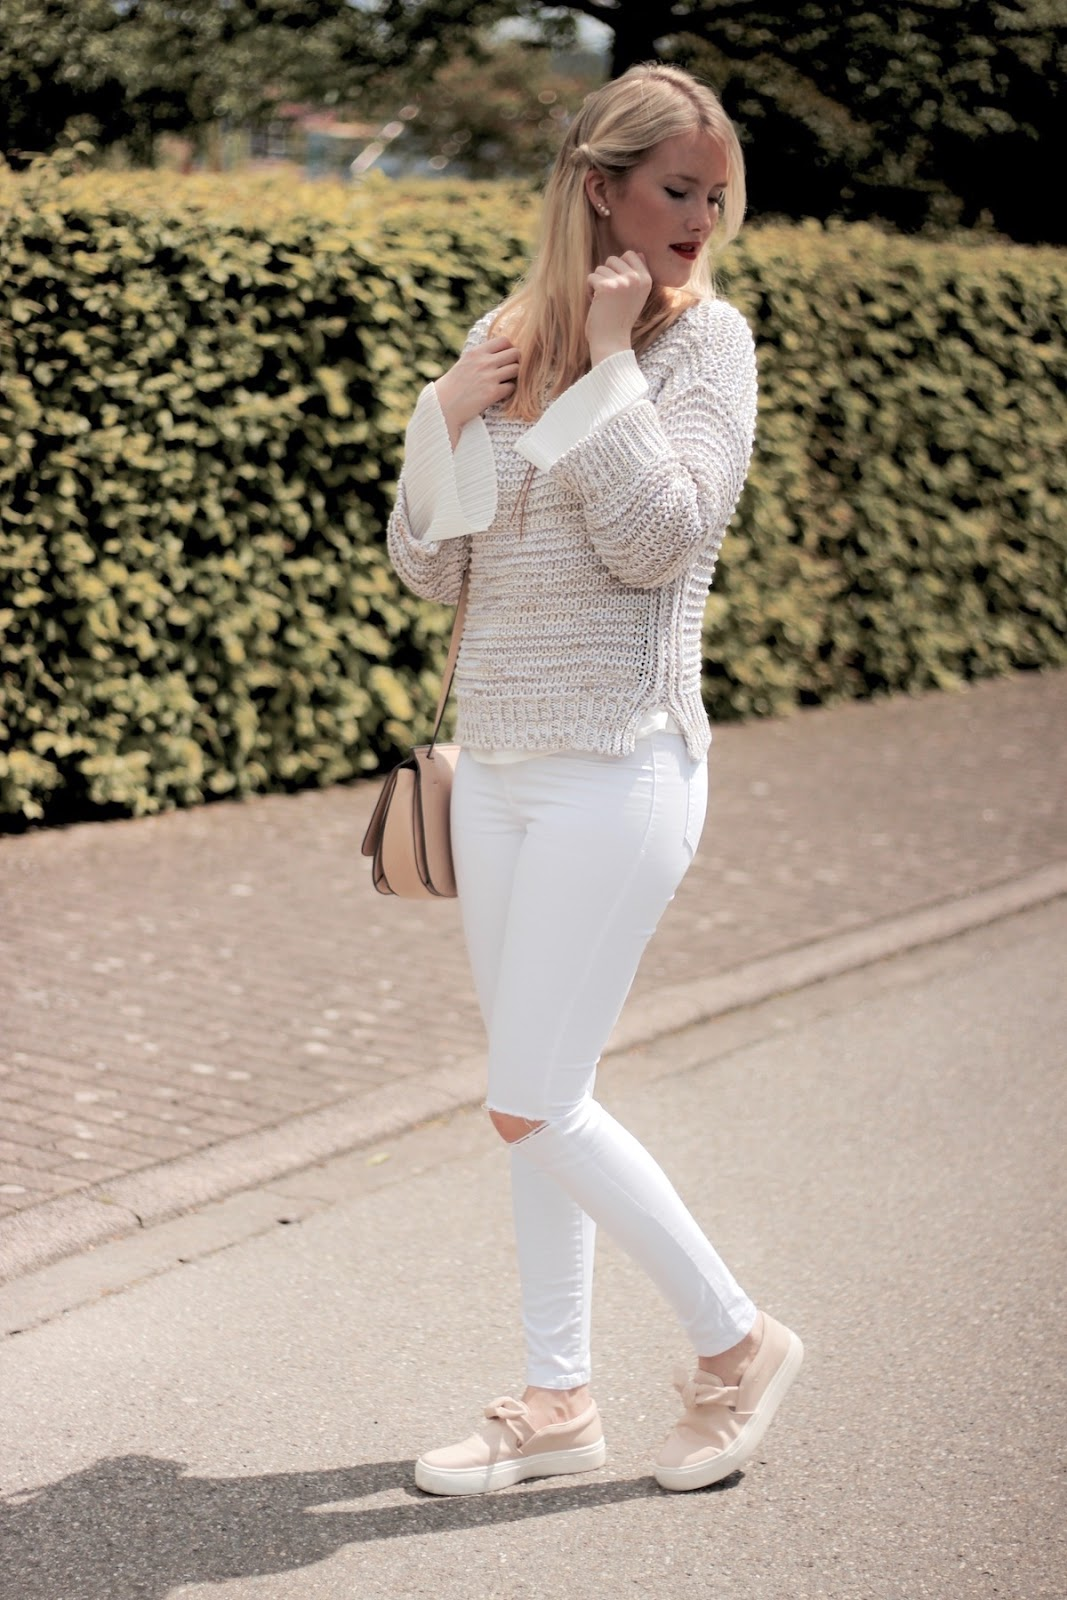 Fashion Outfit Bell Sleeves Zara Sneaker rosa mit Schleife Bow Sneakers www.theblondelion.com